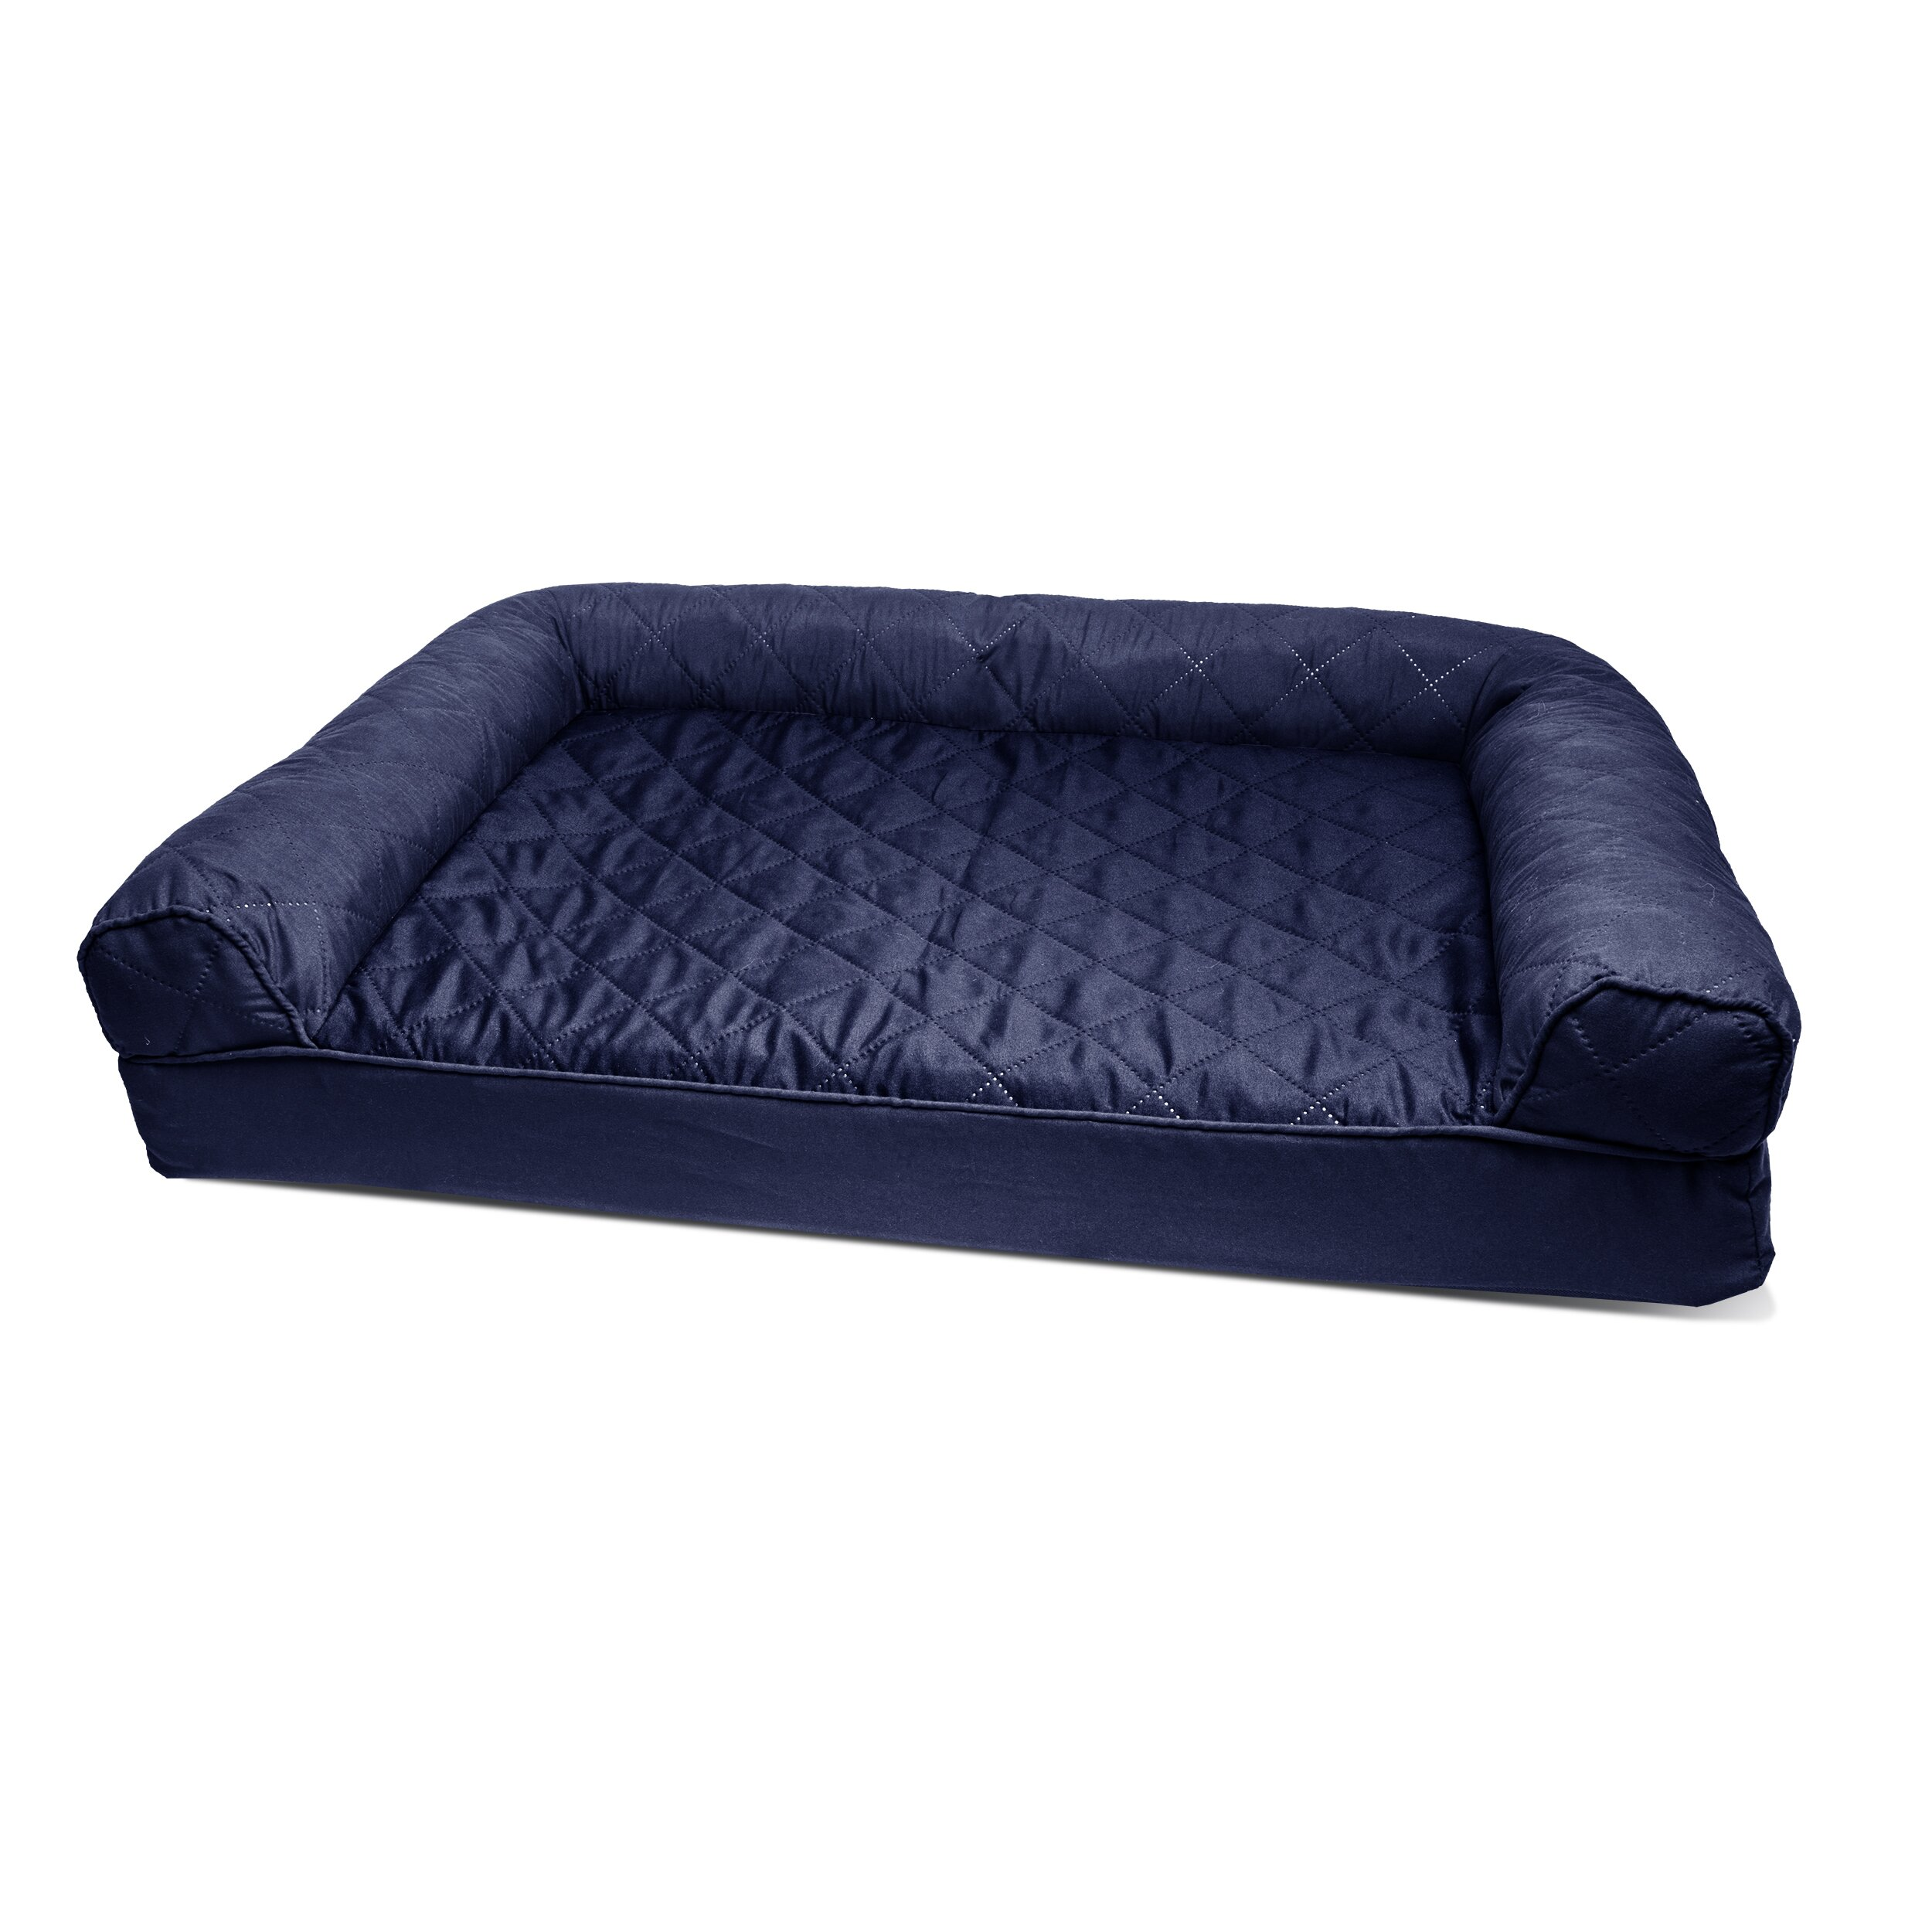 Sofa Style Orthopedic Pet Bed Mattress